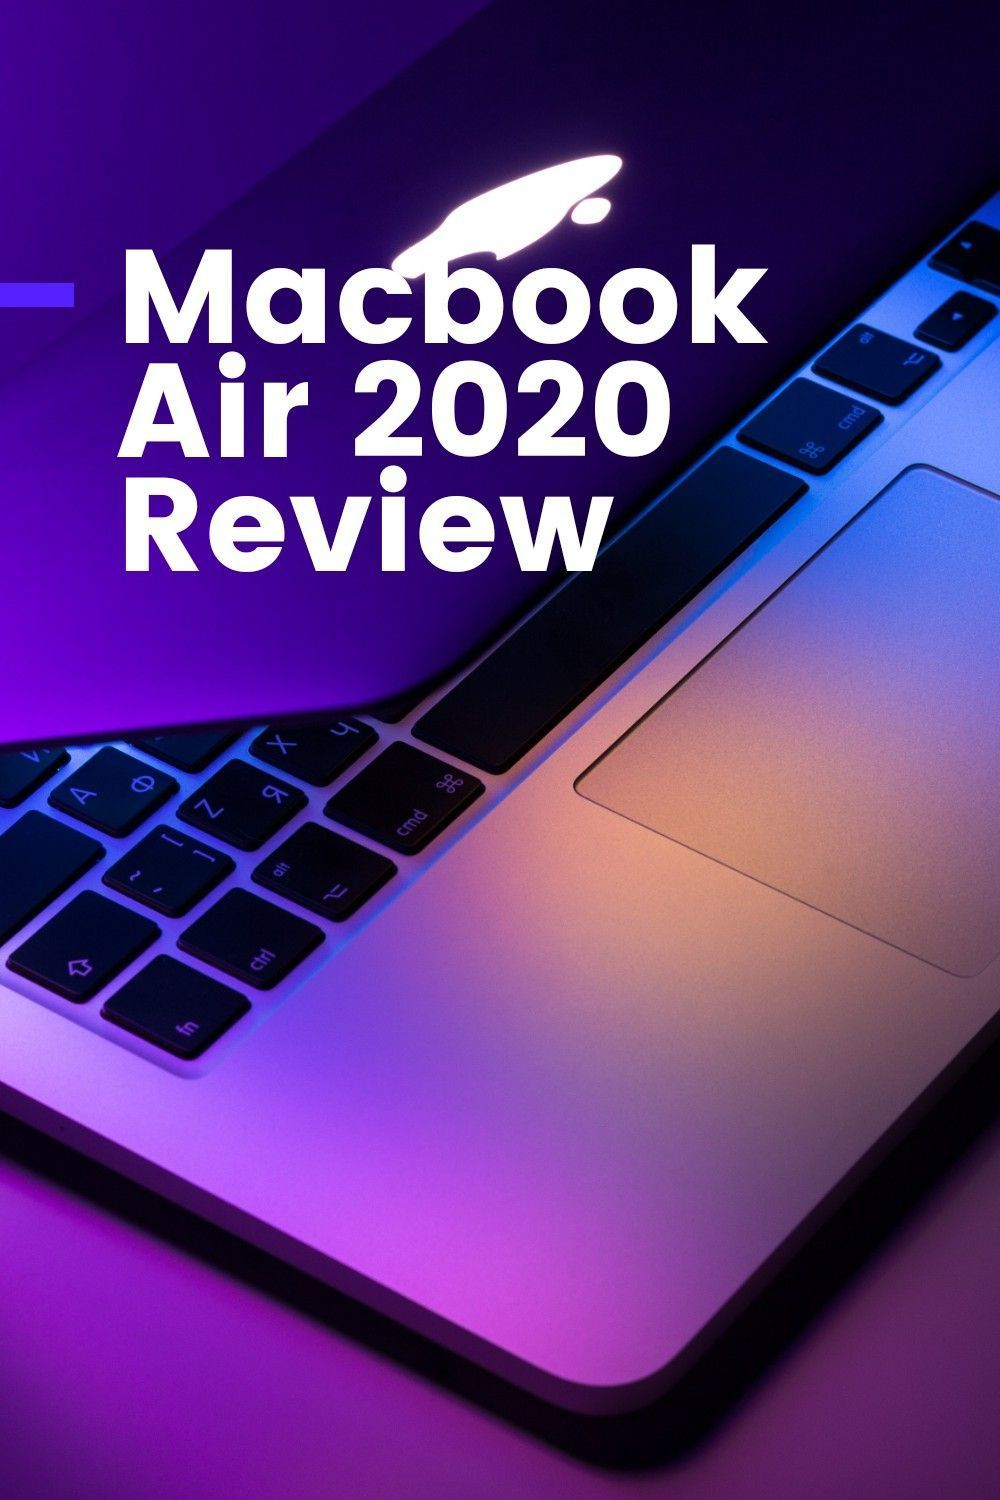 New MacBook Air 2020 Review From Urtechy. in 2020